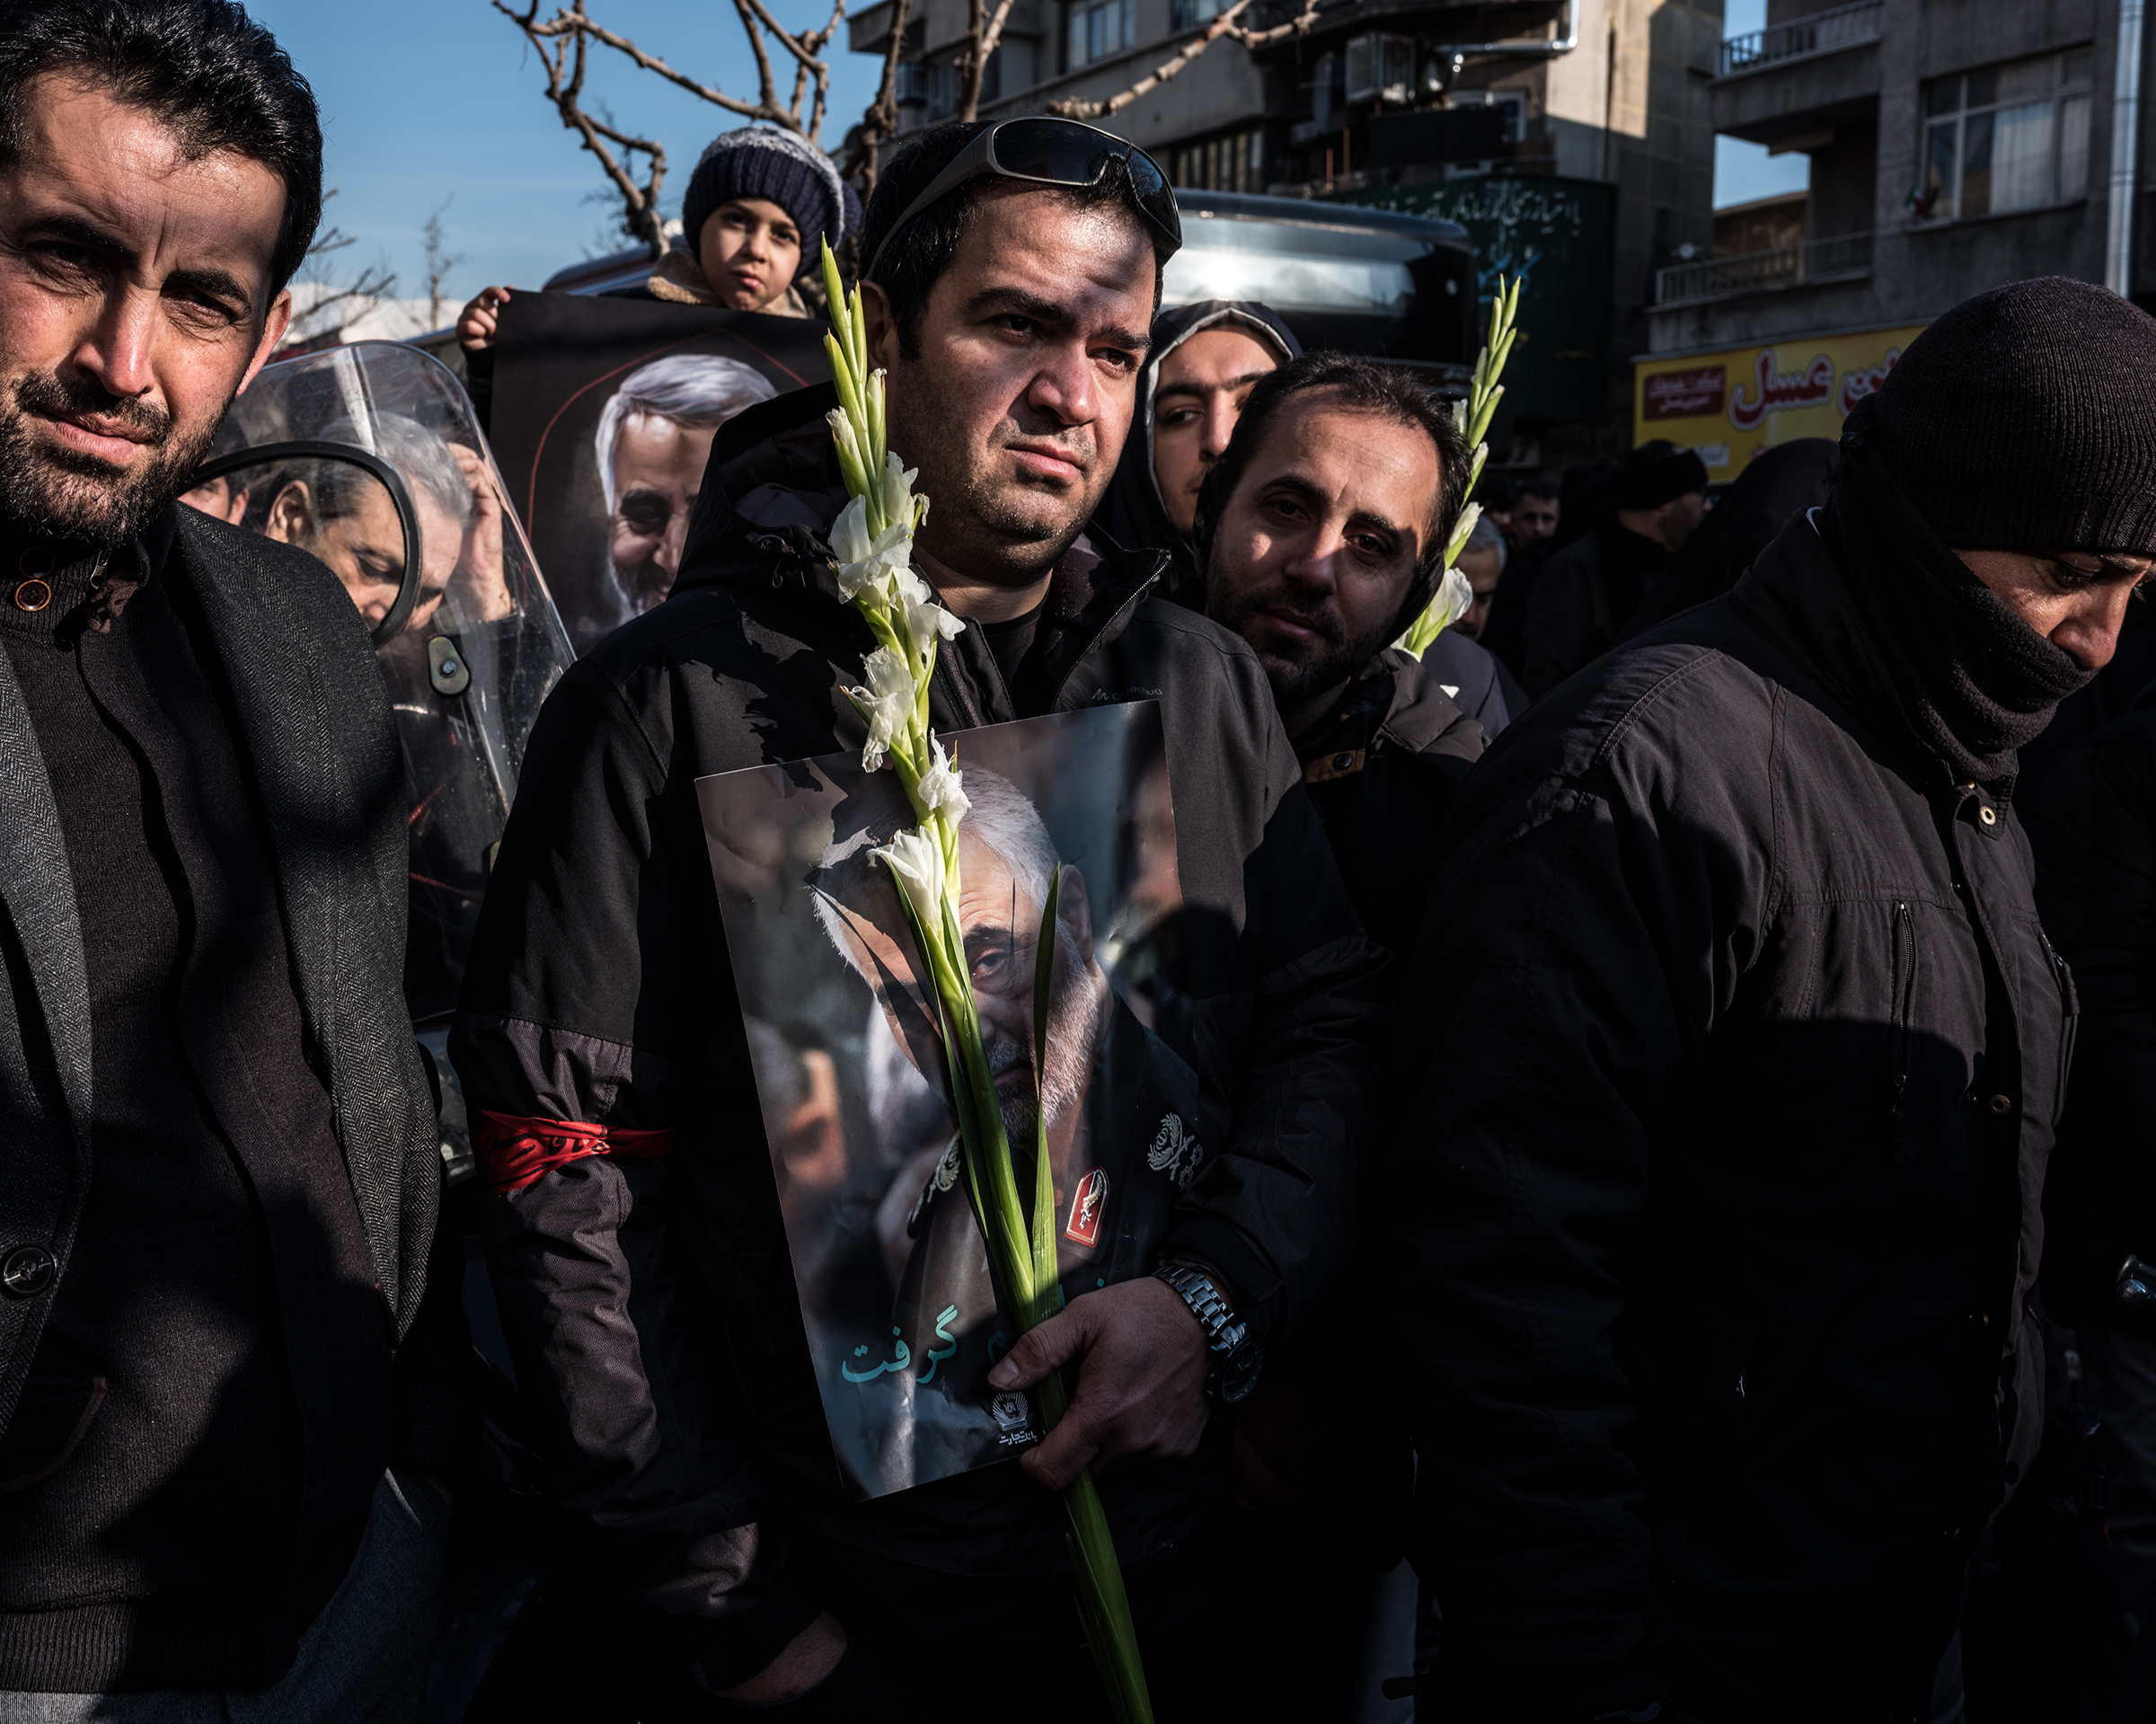 Vast crowds gathered in the streets of Iran's capital on Jan. 6 for a final farewell.